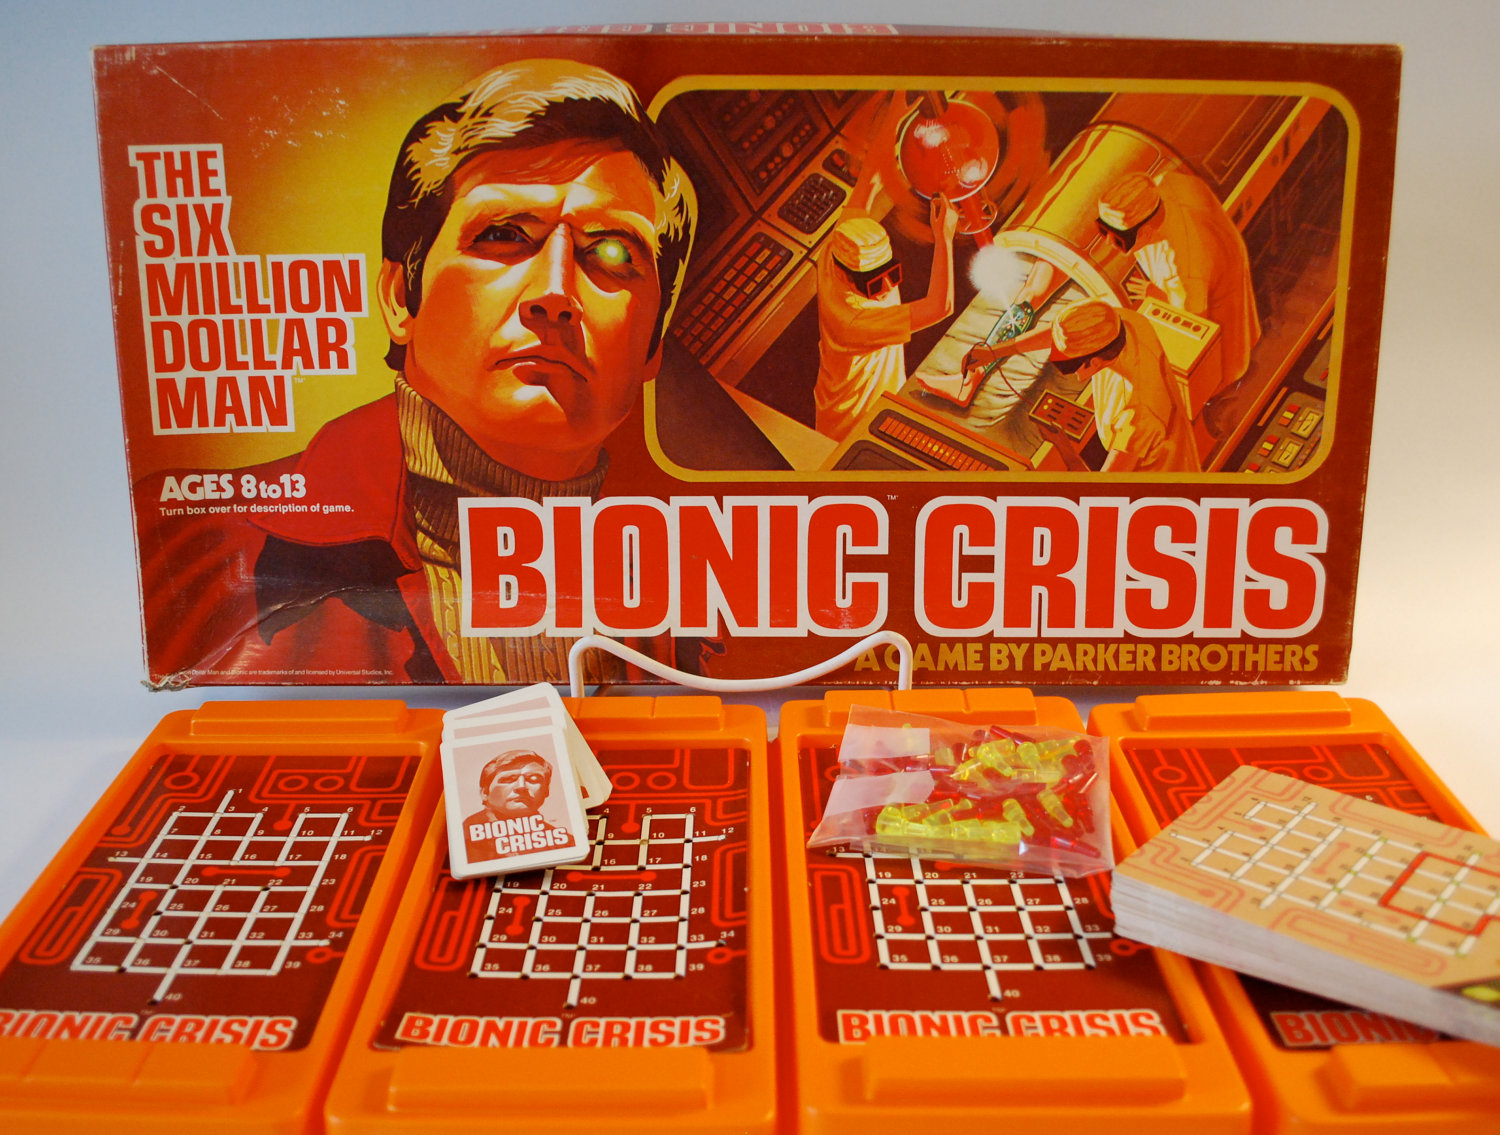 The Six Million Dollar Man - Bionic Crisis